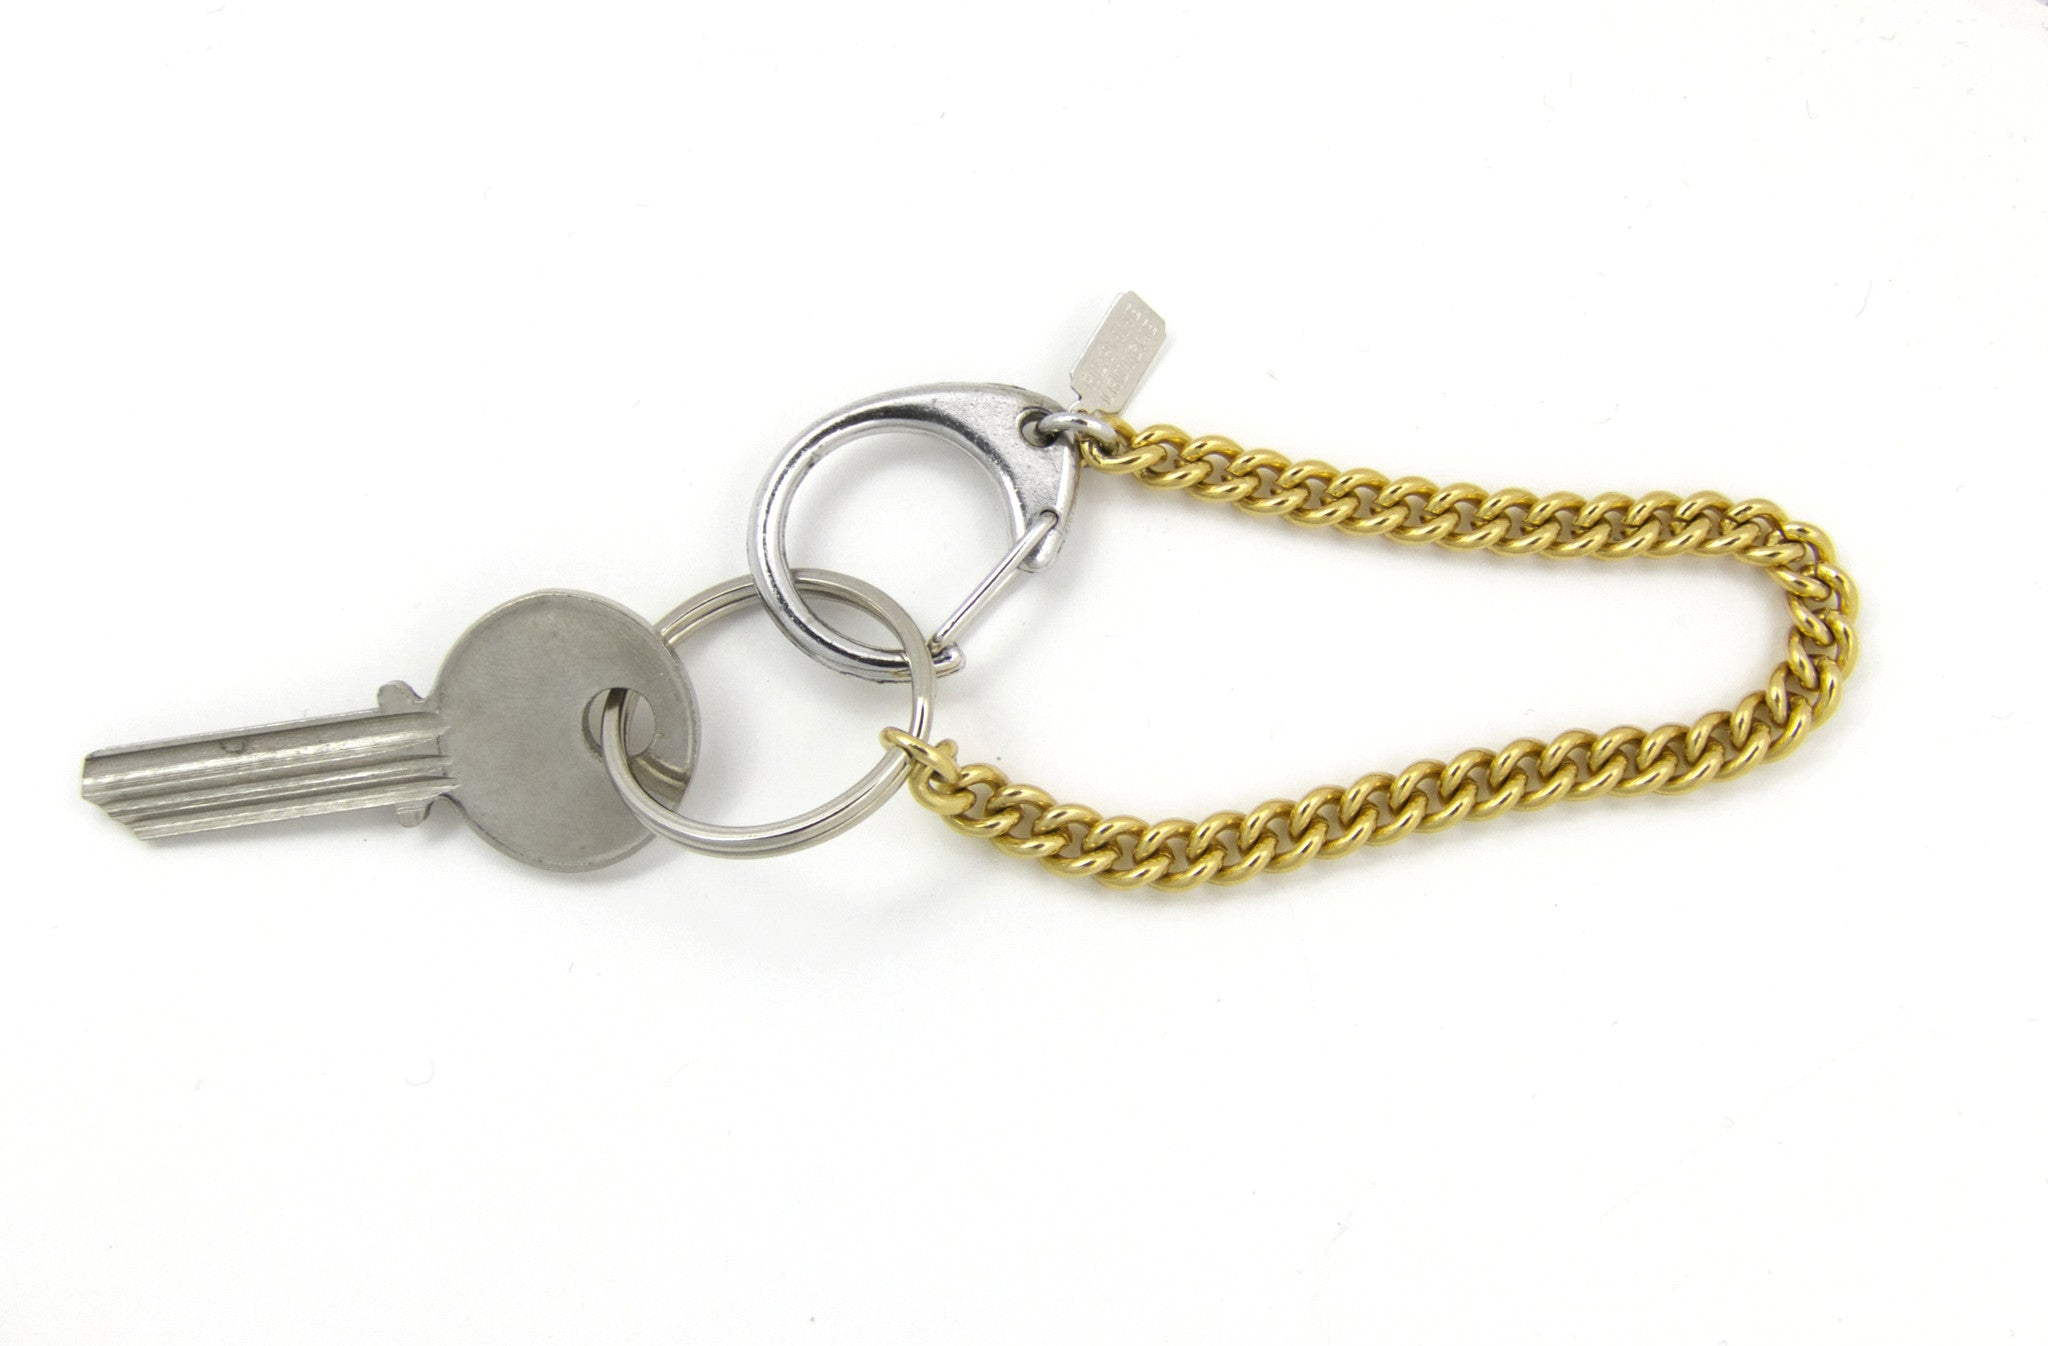 Curb Key Chain